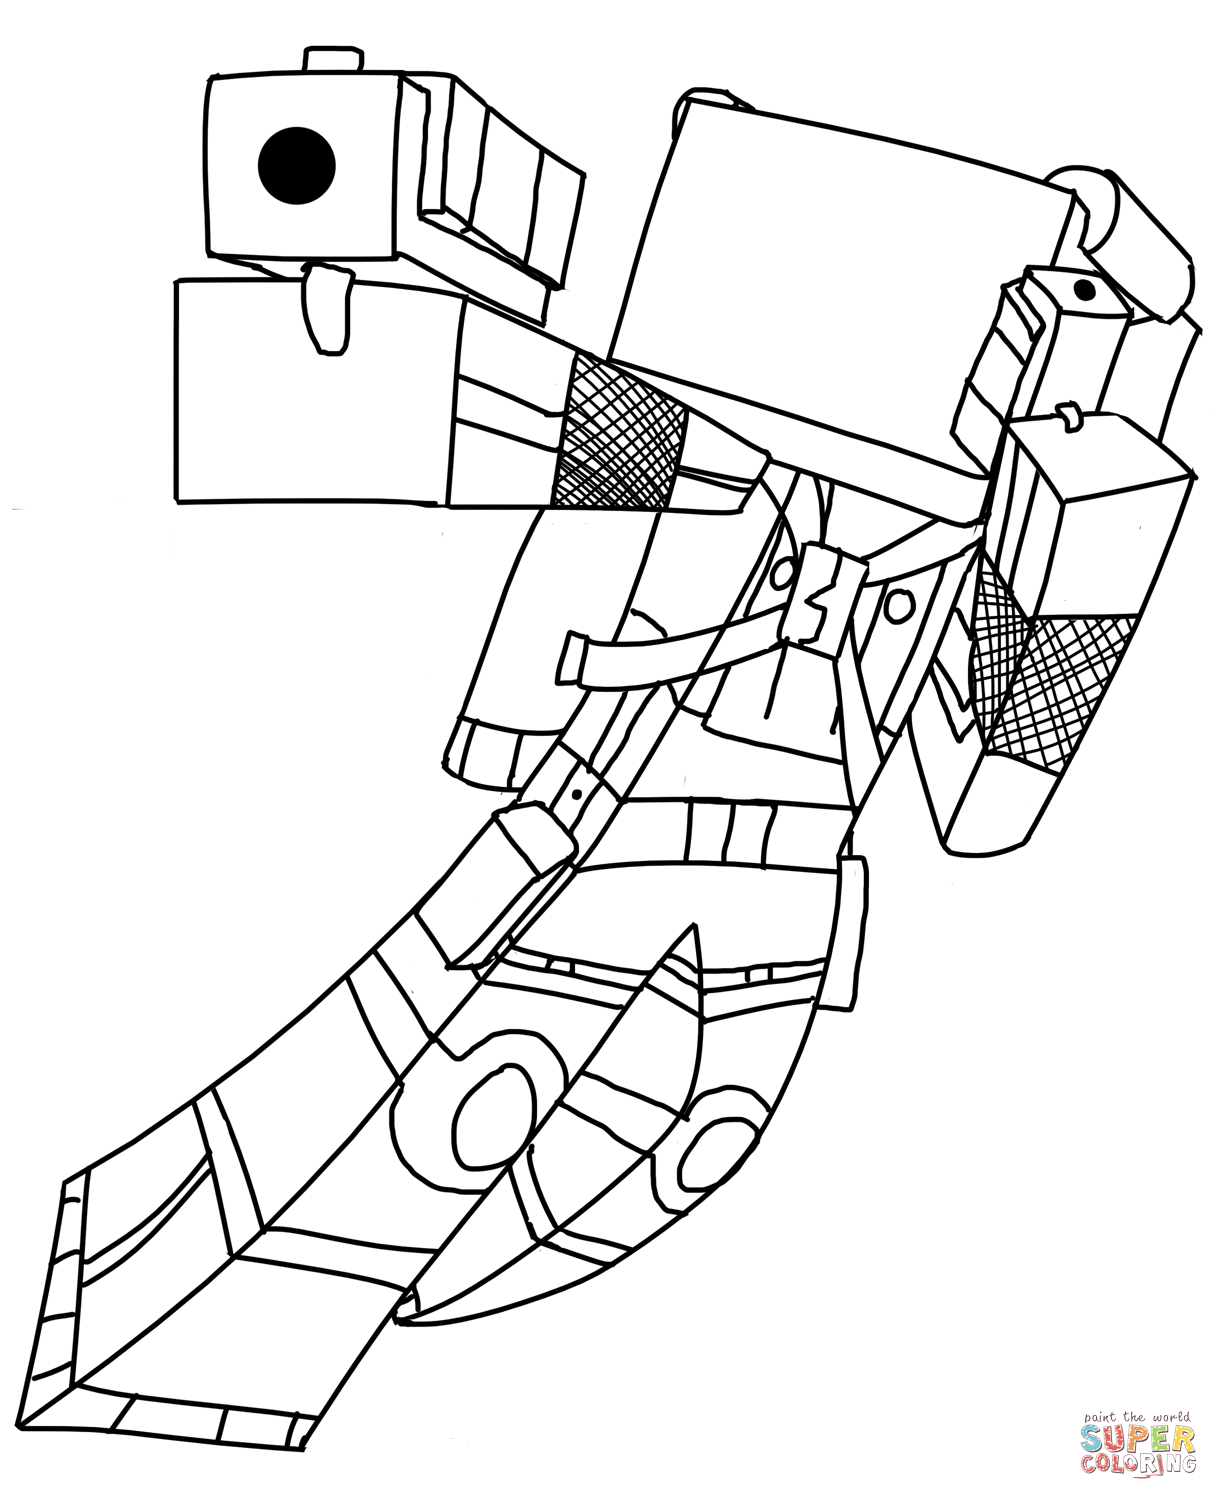 minecraft skin coloring pages minecraft skins coloring pages coloring home coloring skin minecraft pages